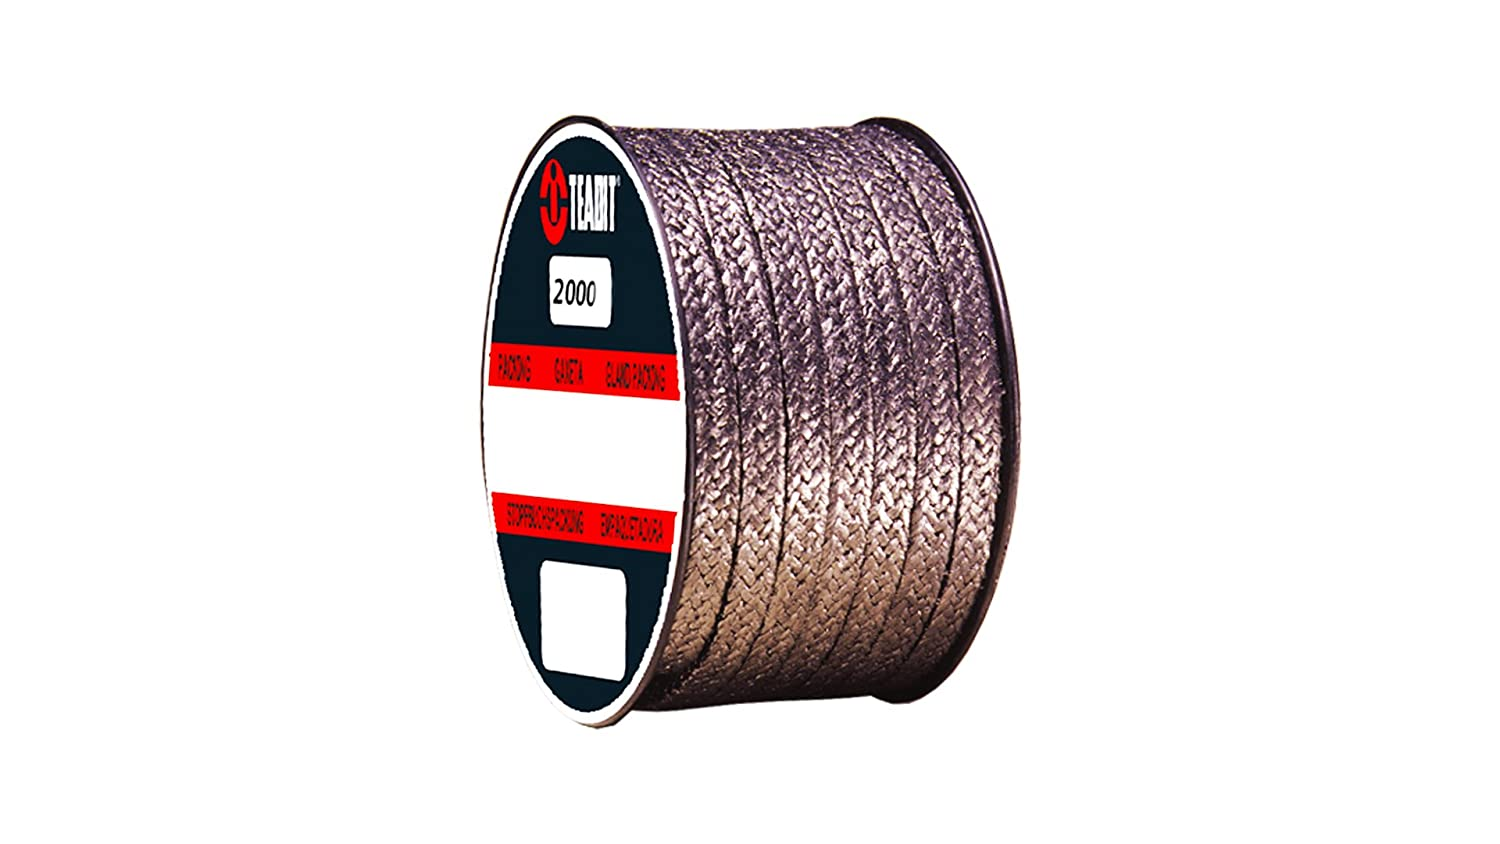 2000.187x1 Teadit Style 2000 Braided Flexible Graphite Packing Sterling Seal and Supply 3//16 CS x 1 lb STCC Spool